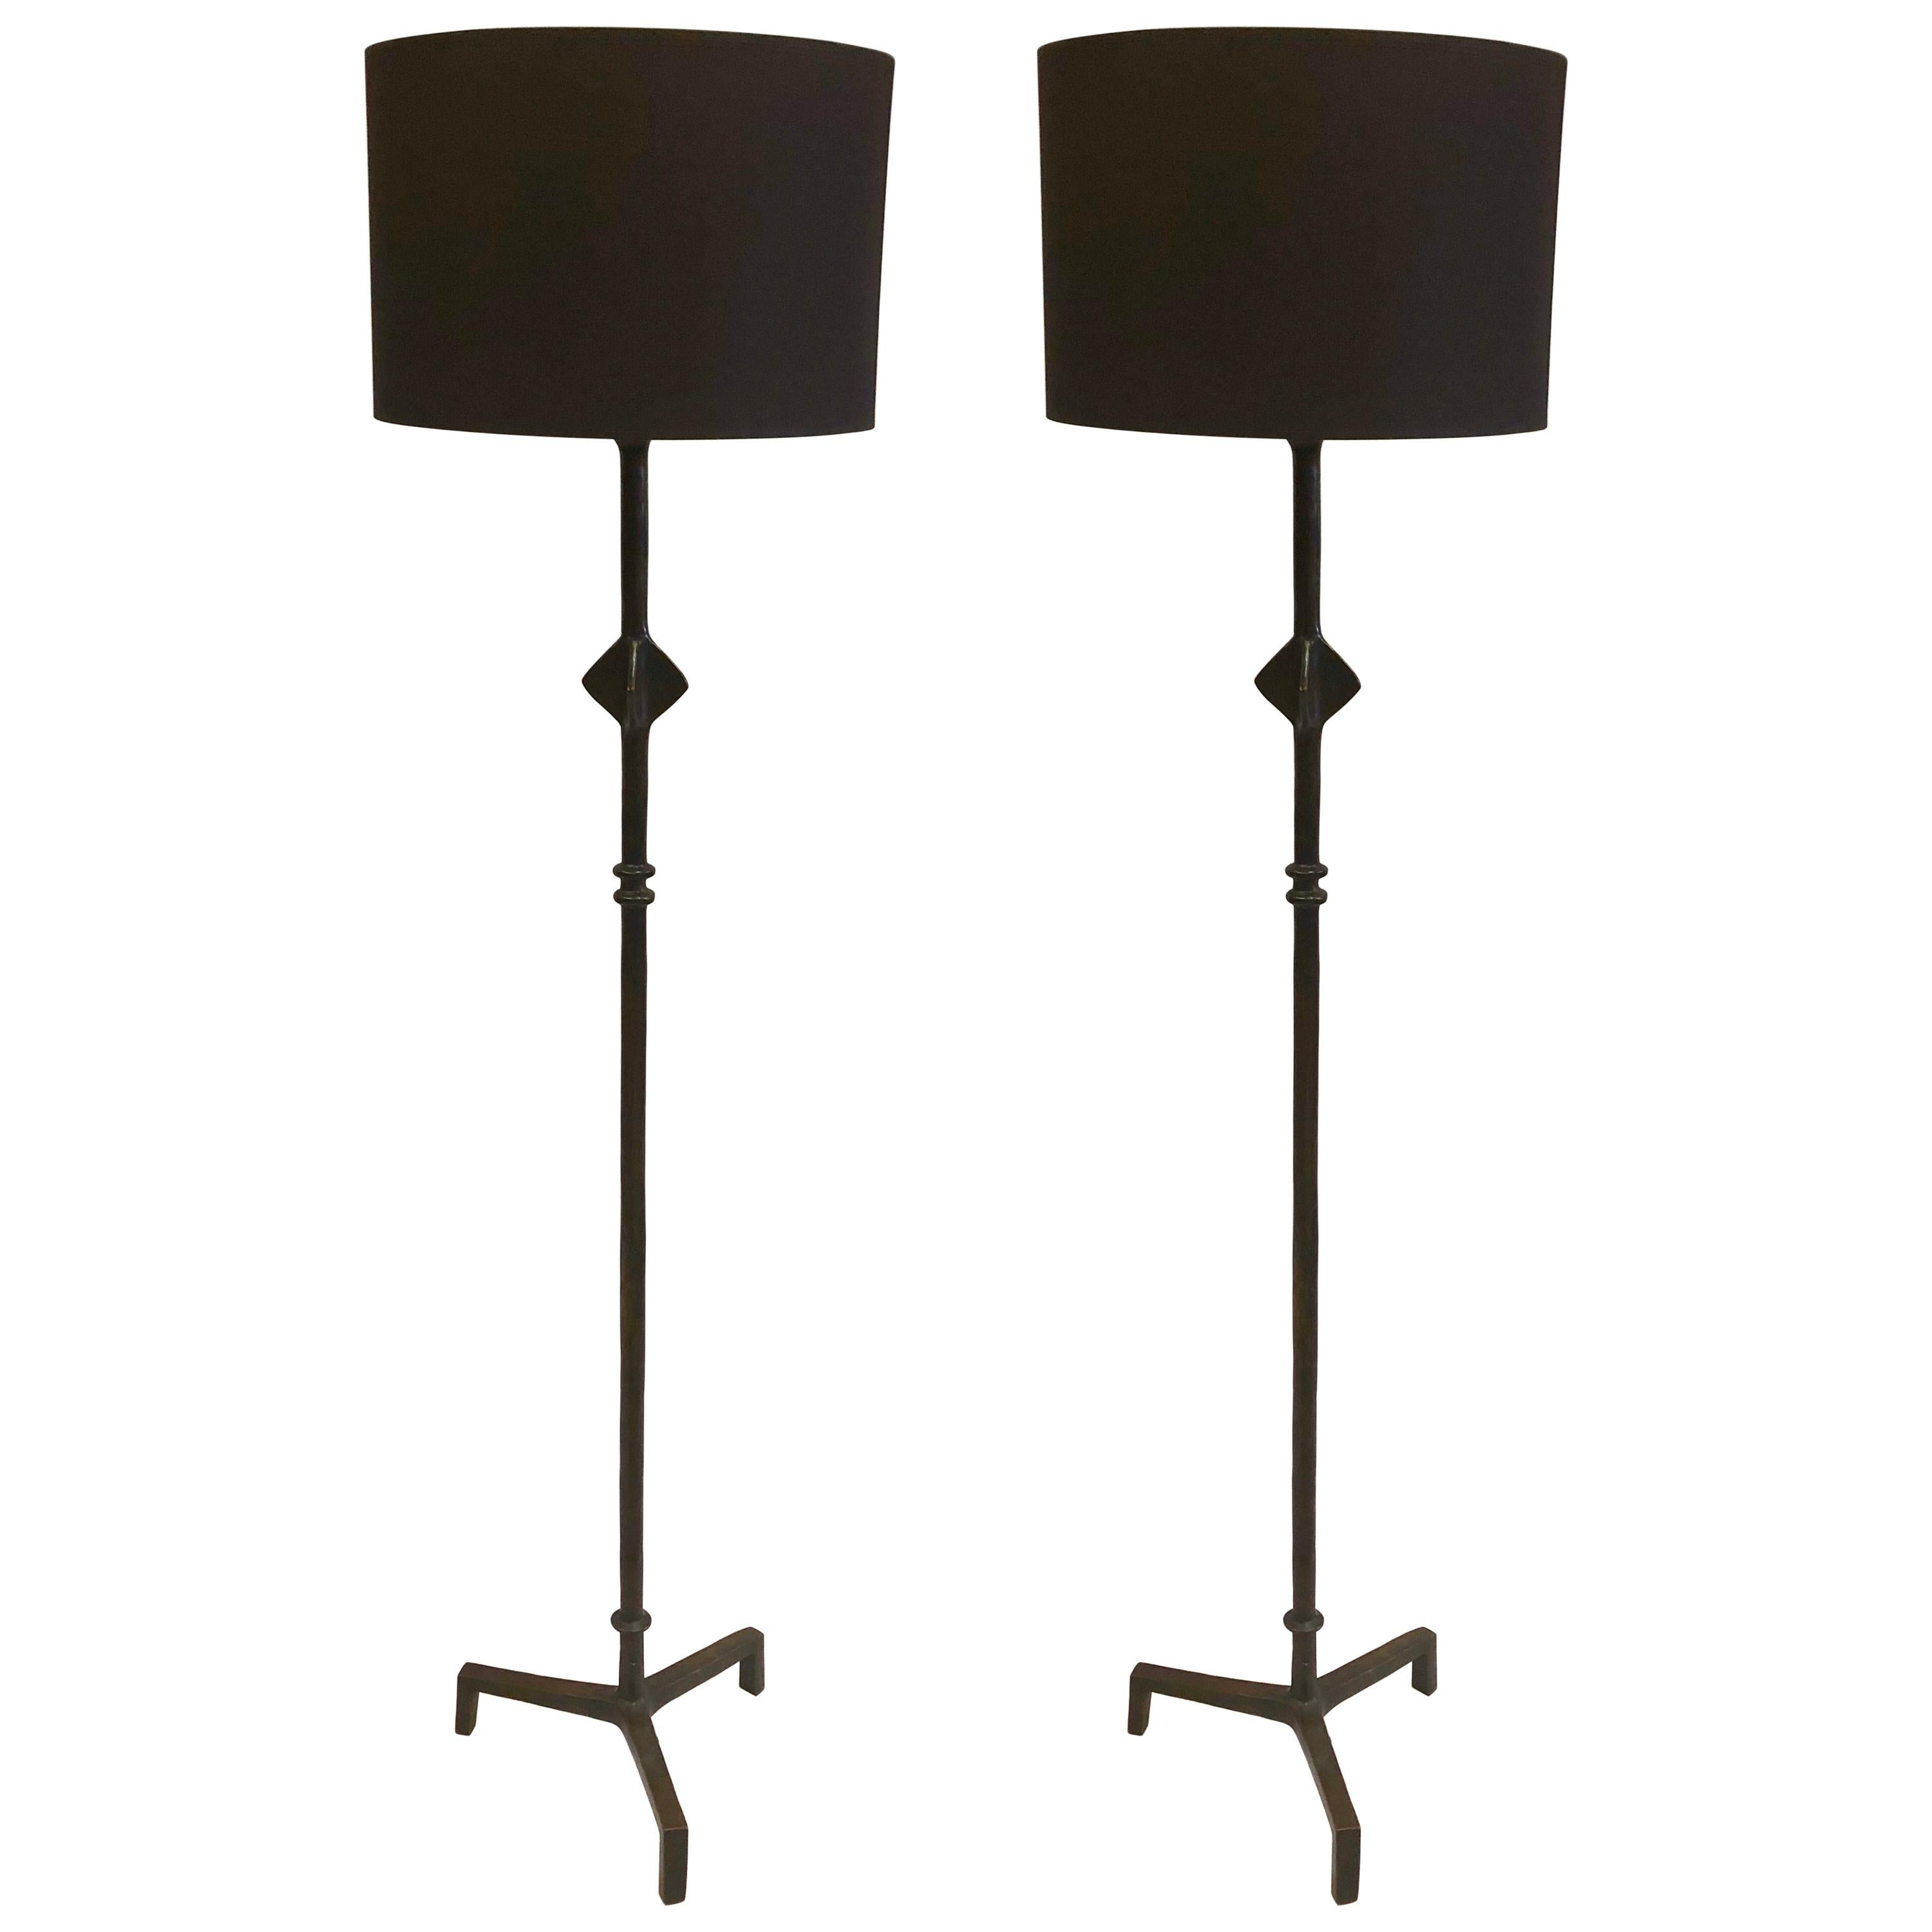 French Forged Iron 'Star' Floor Lamps after Giacometti, Jean Michel Frank, Pair